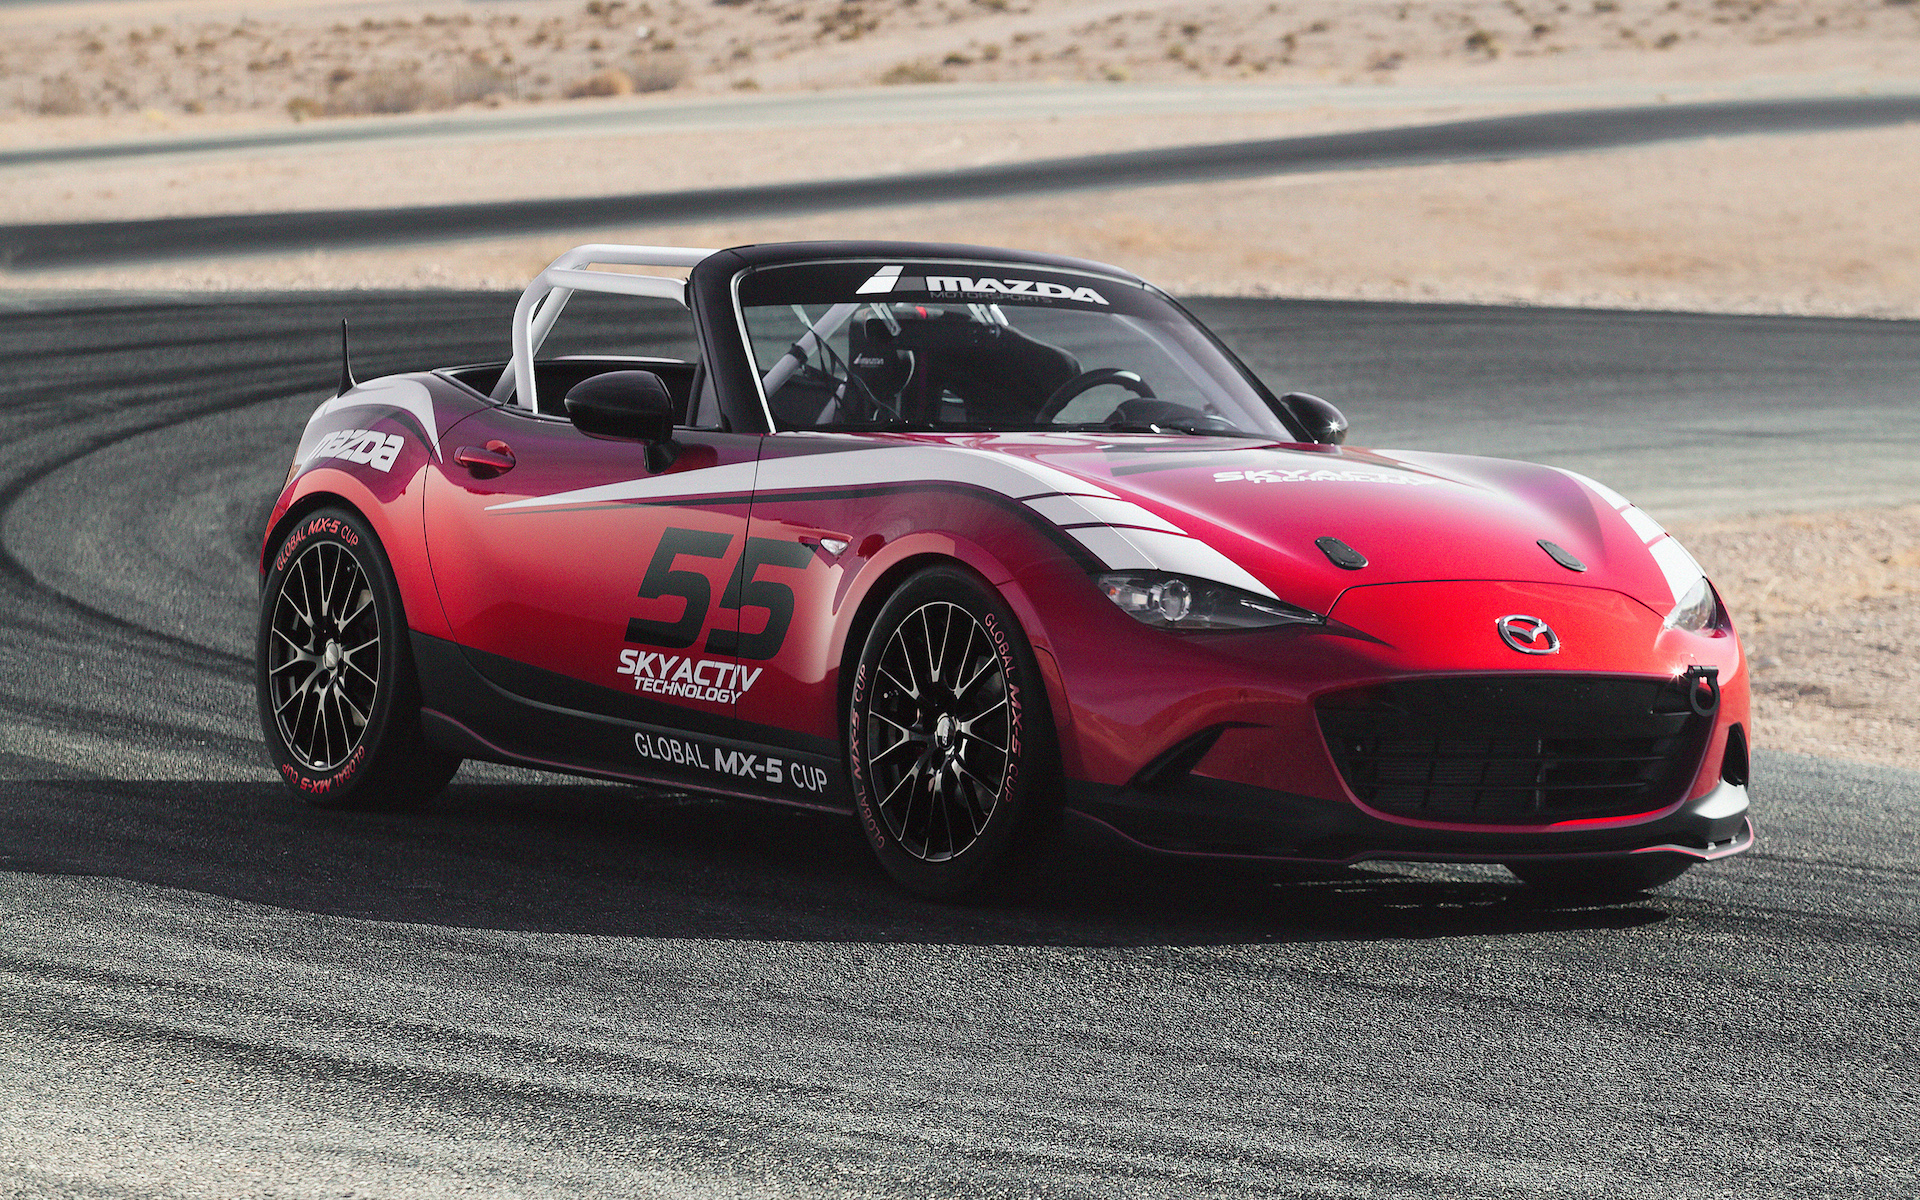 2016 mazda mx 5 cup wallpaper hd car wallpapers 2016 mazda mx 5 cup voltagebd Choice Image